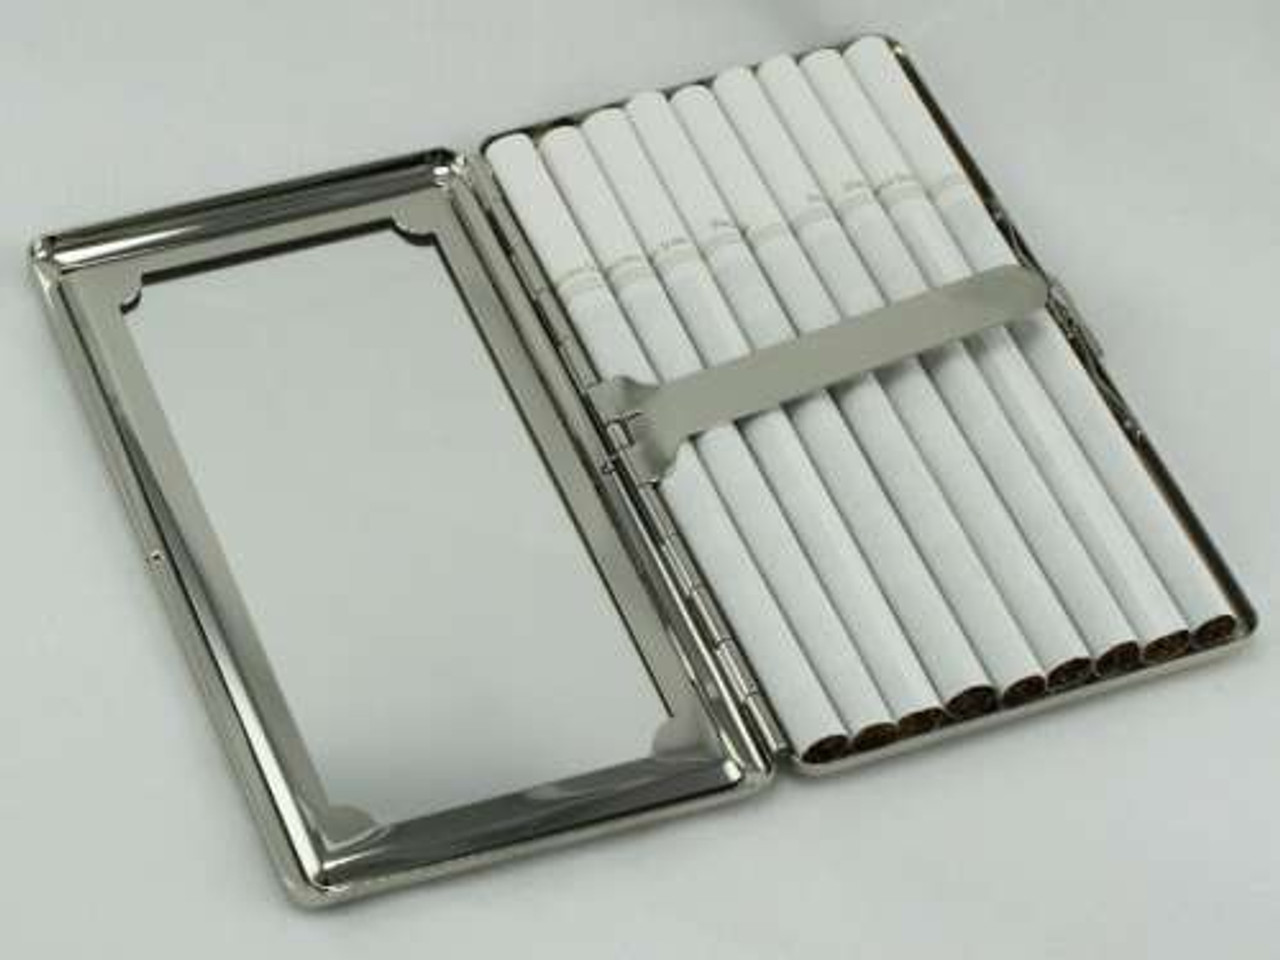 Circular Art Mirror Cigarette Case